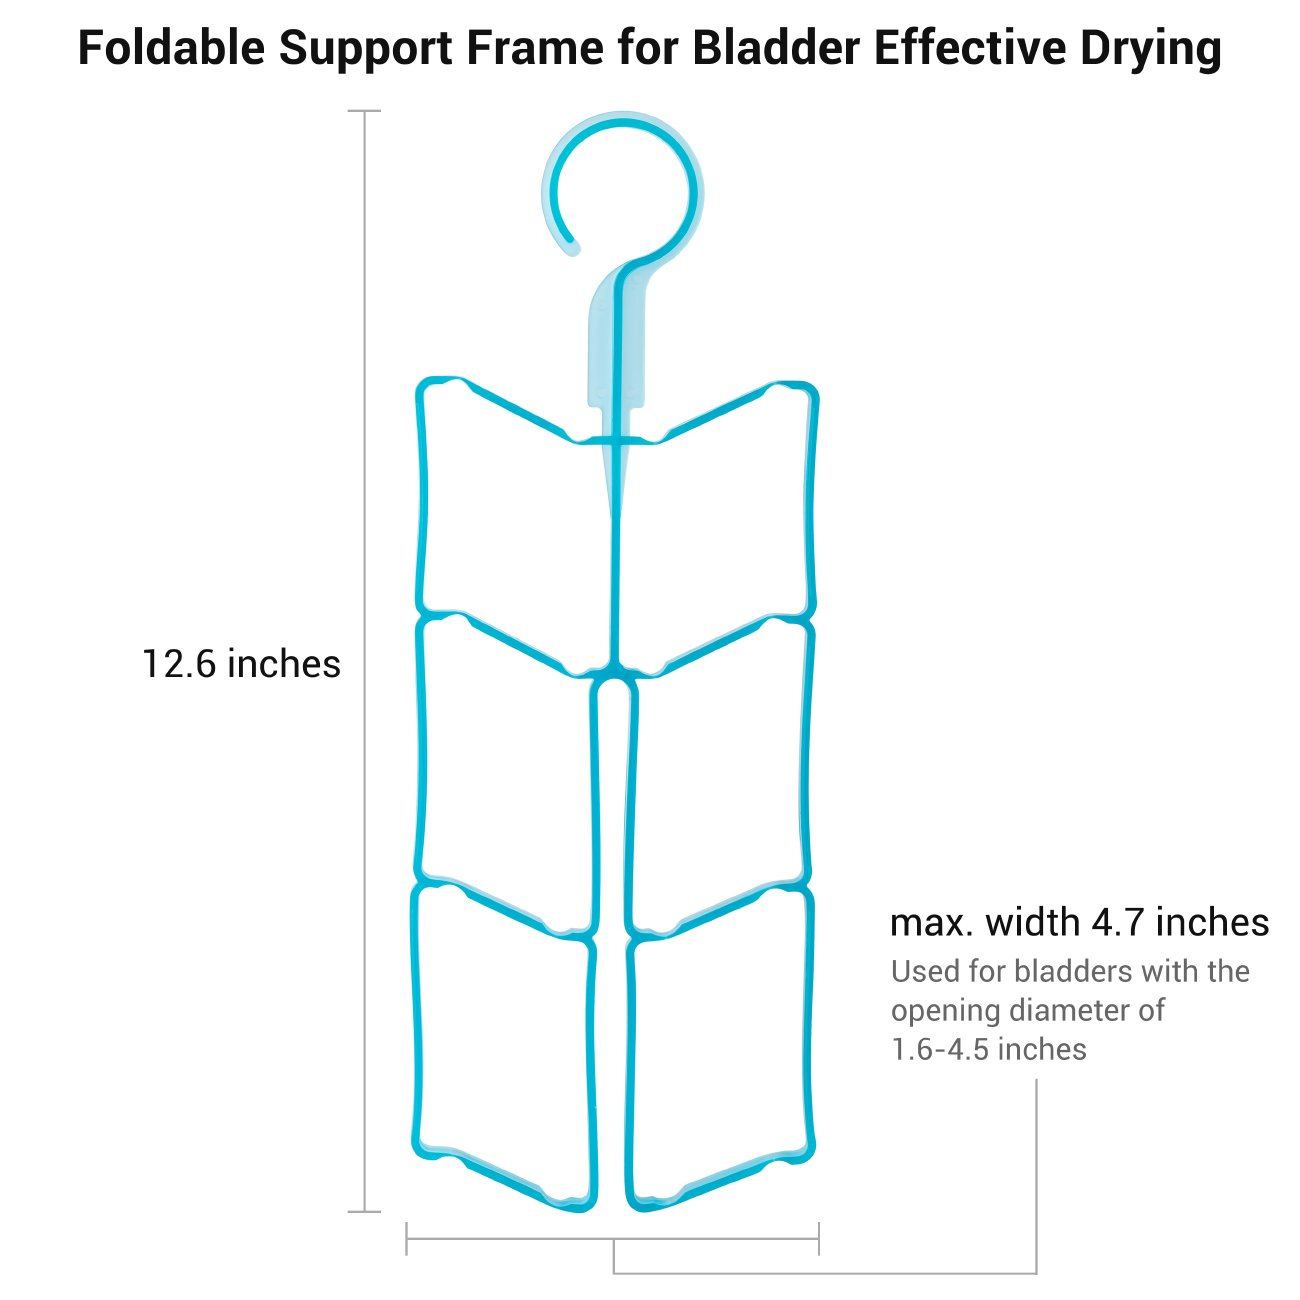 Foldable able support frame for drying